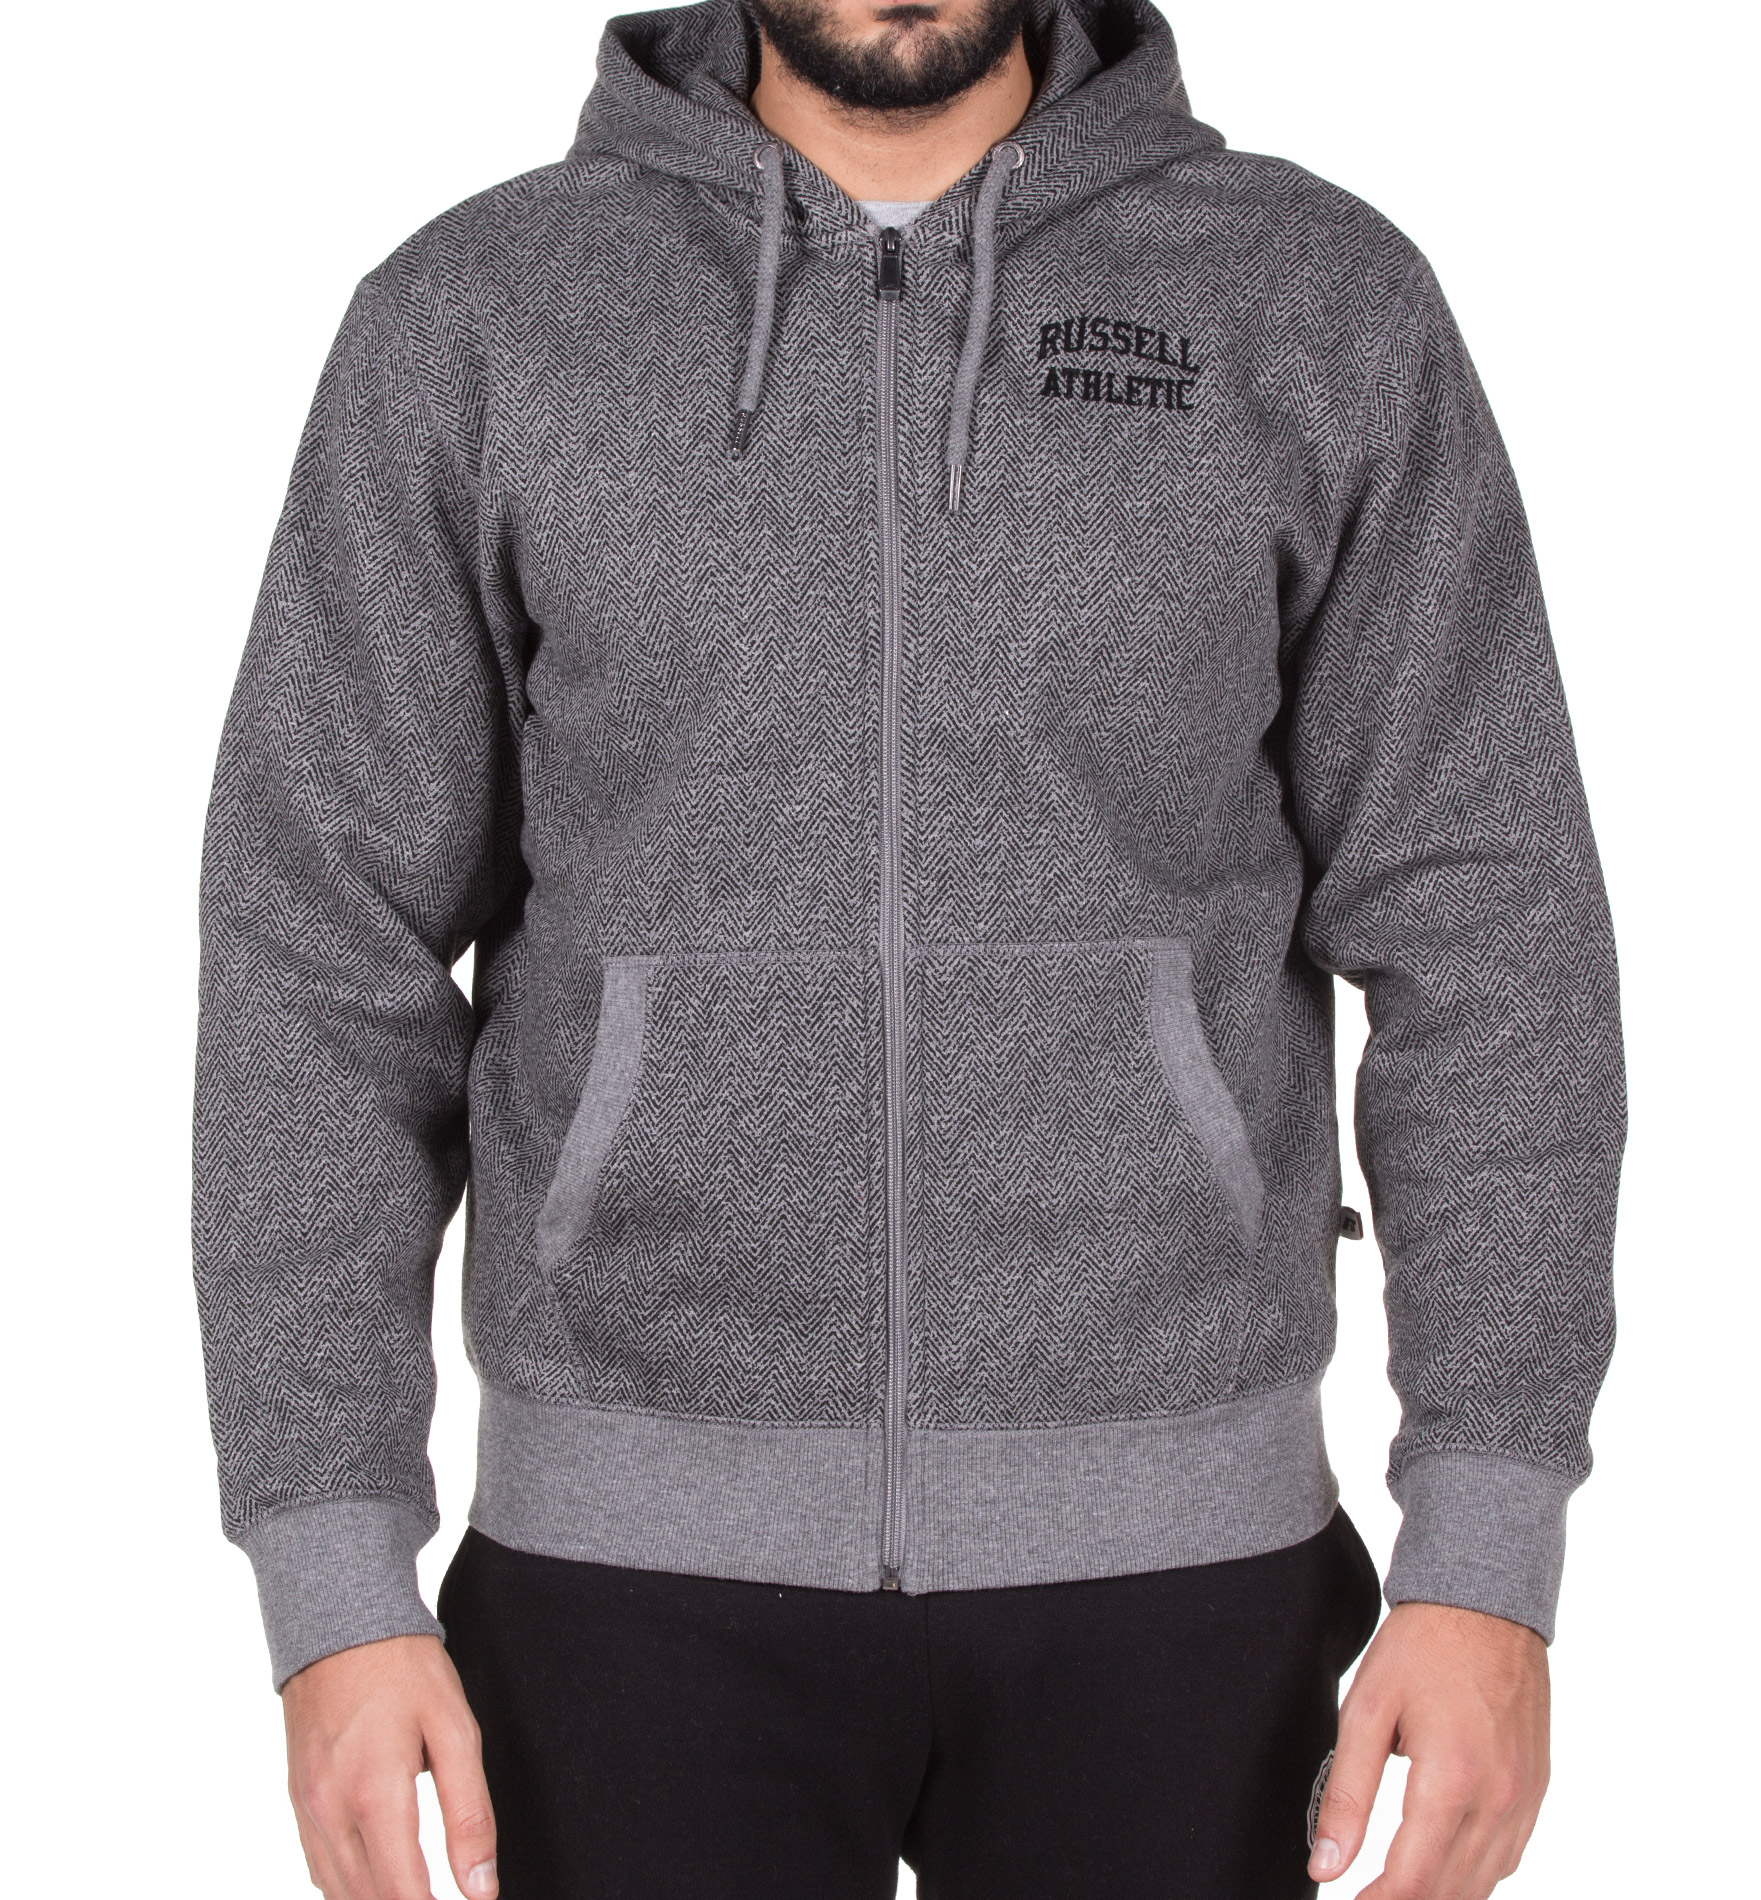 RUSSELL ATHLETIC ZIP THROUGH WITH CHEVRON PRINT HOODIE A7-017-2-090 Γκρί